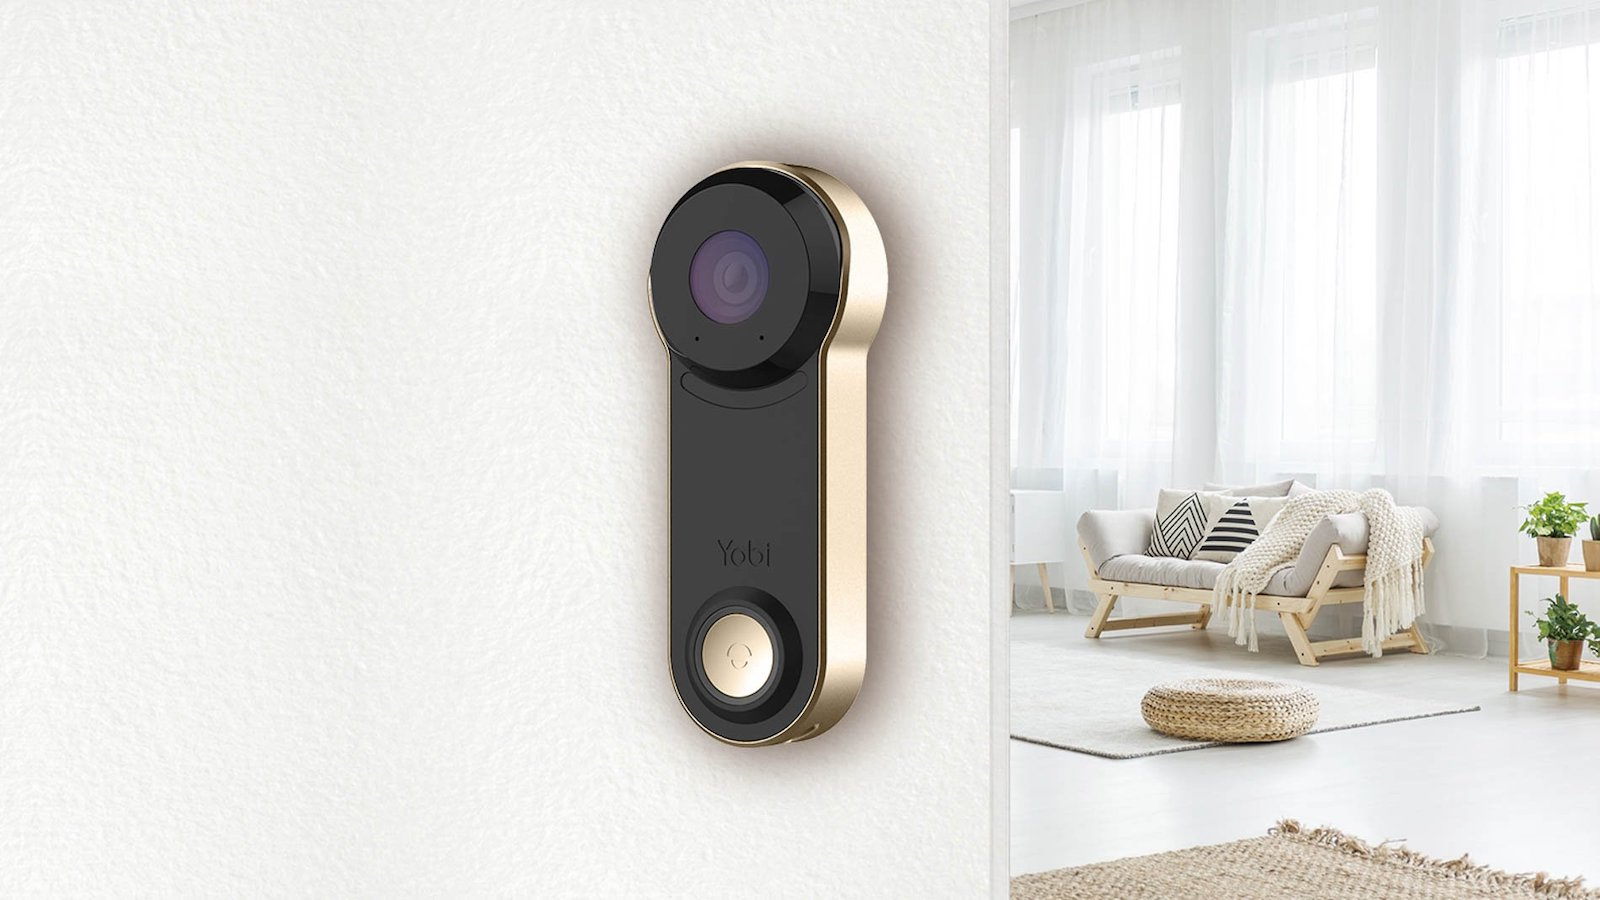 Yobi Video Smart Doorbell B3 features infrared night vision, smart notifications, and more